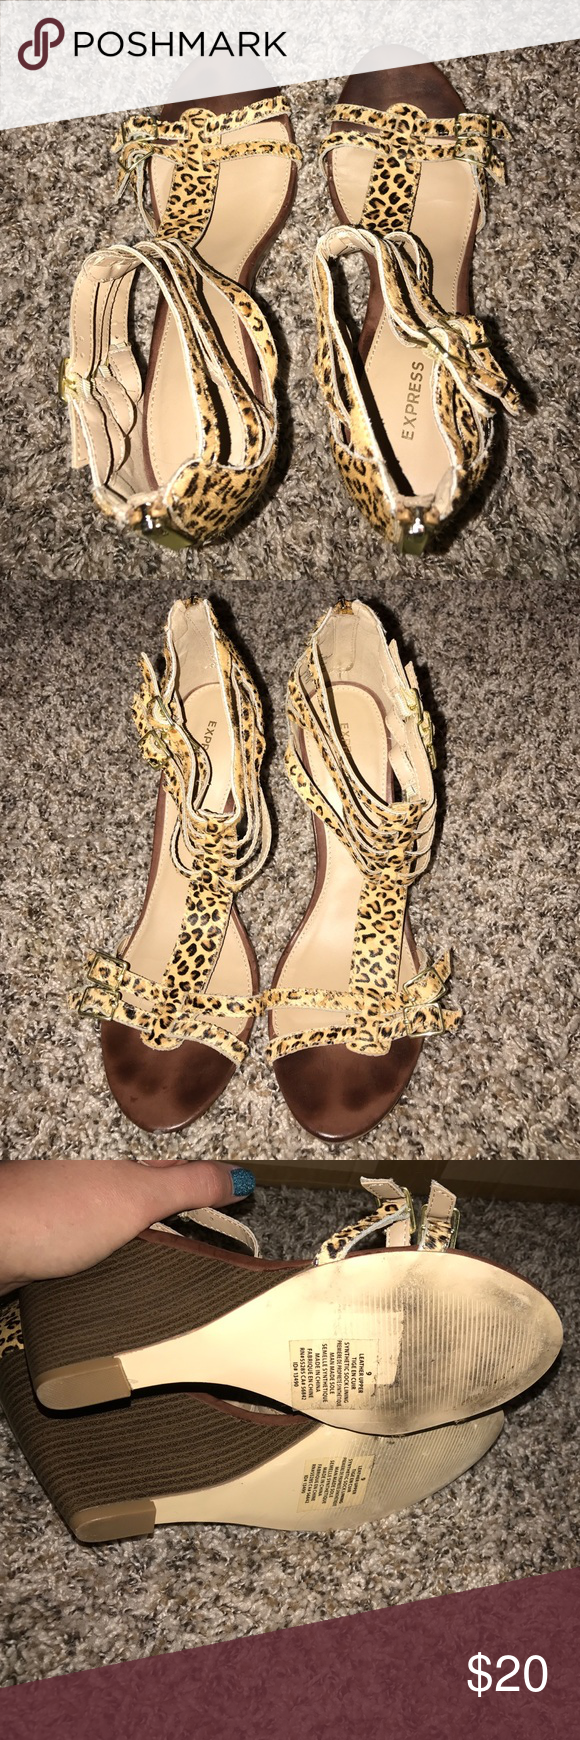 Leopard Wedges Worn twice. From Express. Size 9. Gold zipper and metal detail. Express Shoes Wedges